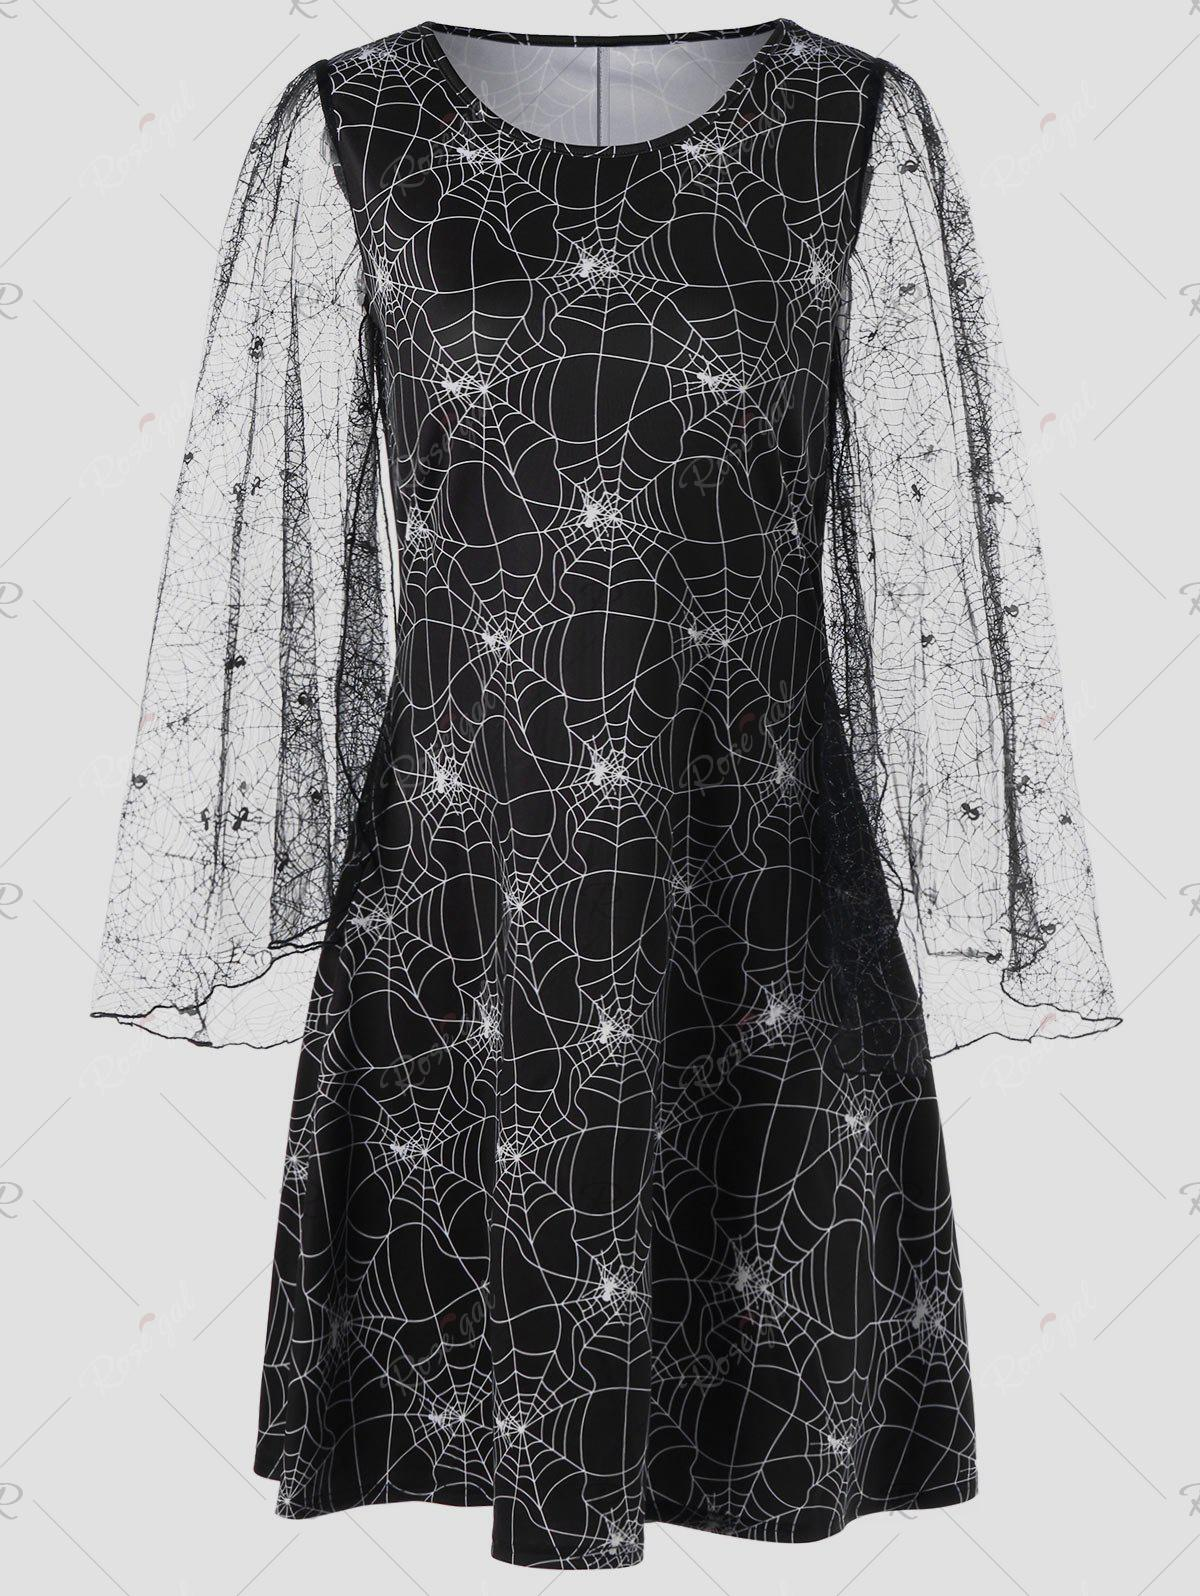 Halloween Sheer Plus Size Spider Web DressWOMEN<br><br>Size: 4XL; Color: BLACK; Style: Novelty; Material: Polyester; Silhouette: A-Line; Dresses Length: Knee-Length; Neckline: Round Collar; Sleeve Length: Long Sleeves; Pattern Type: Others; With Belt: No; Season: Fall,Spring; Weight: 0.3500kg; Package Contents: 1 x Dress;